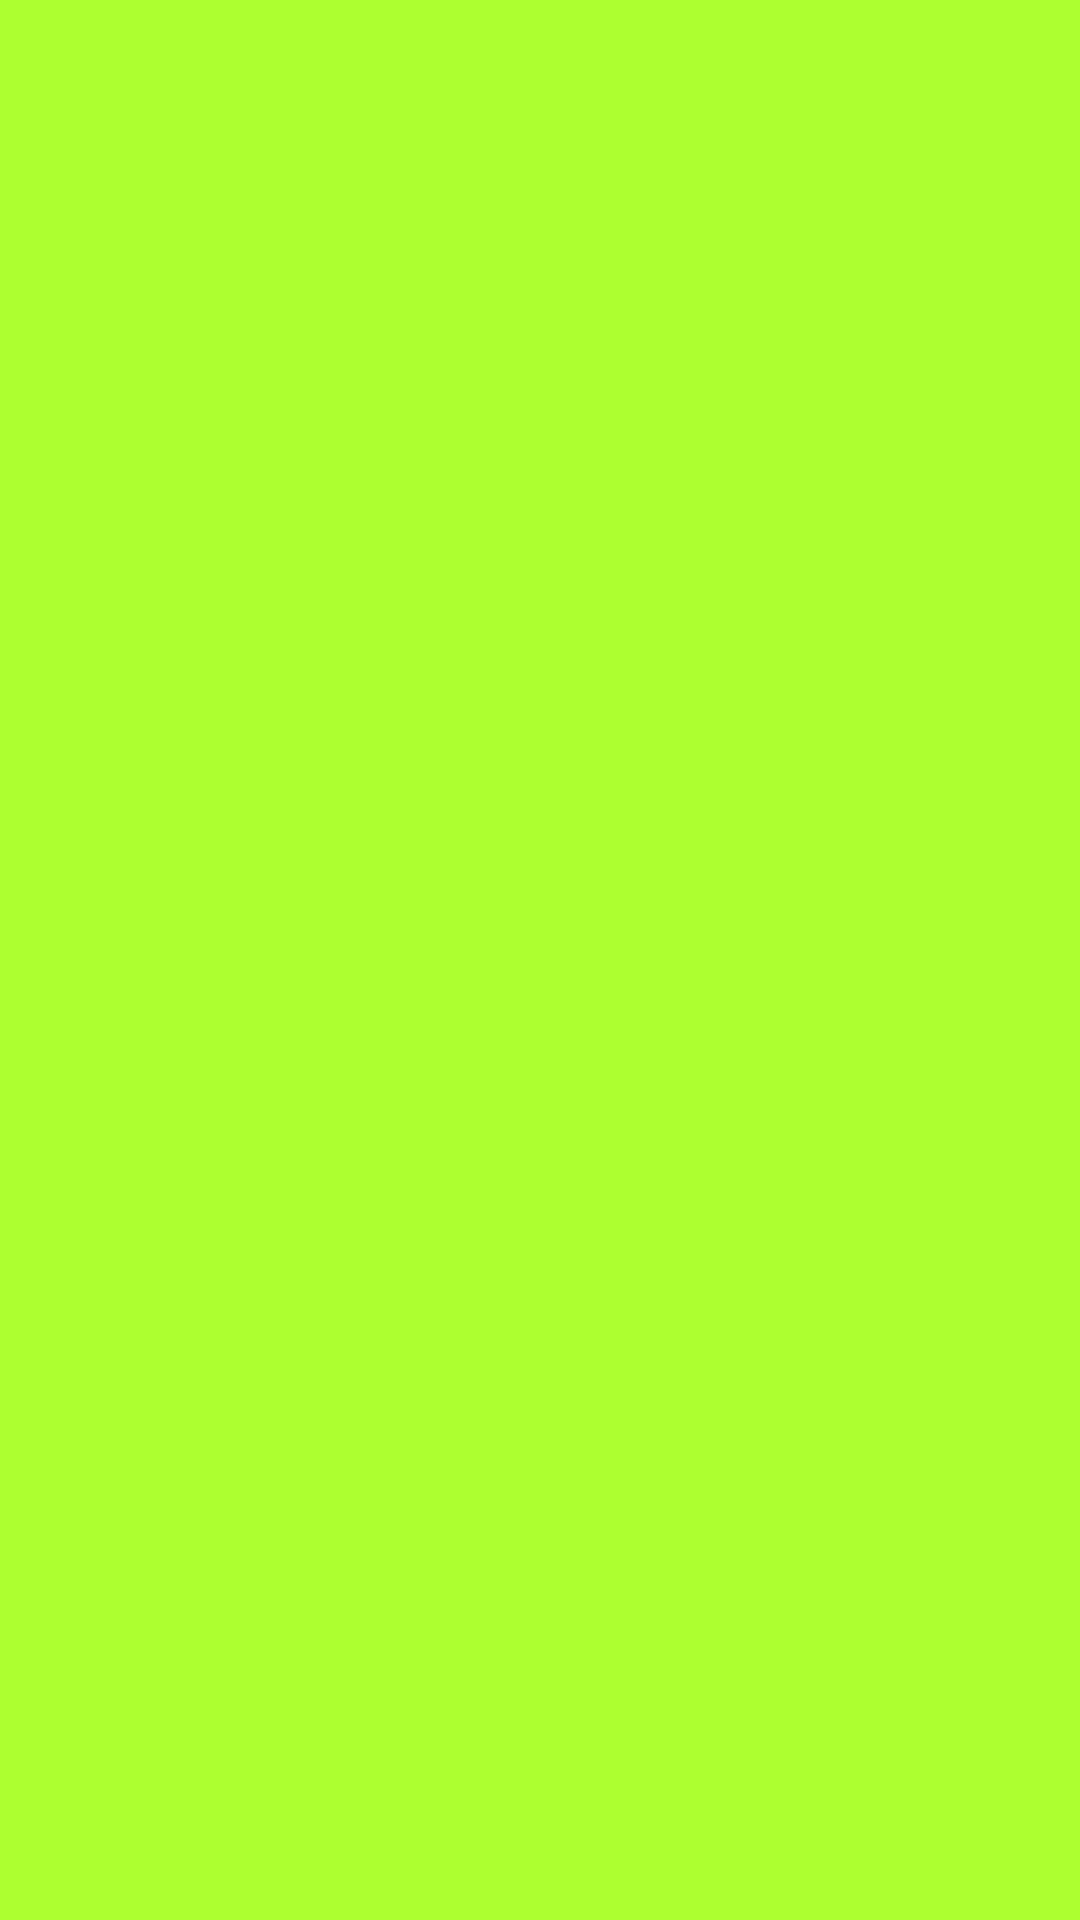 1080x1920 Green-yellow Solid Color Background